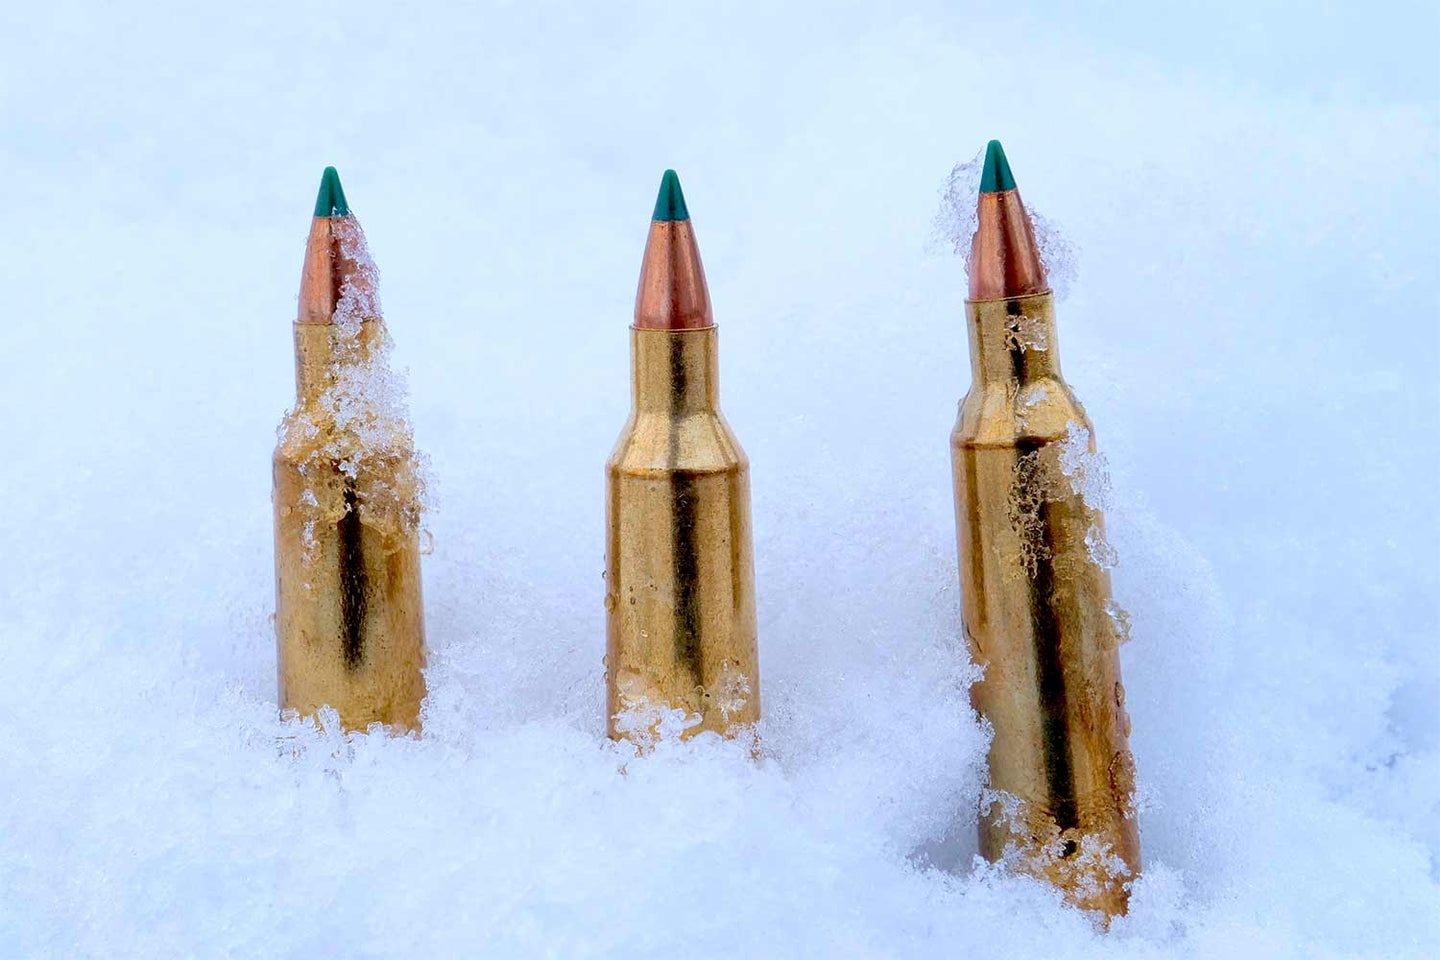 Rifle ammo in the snow.